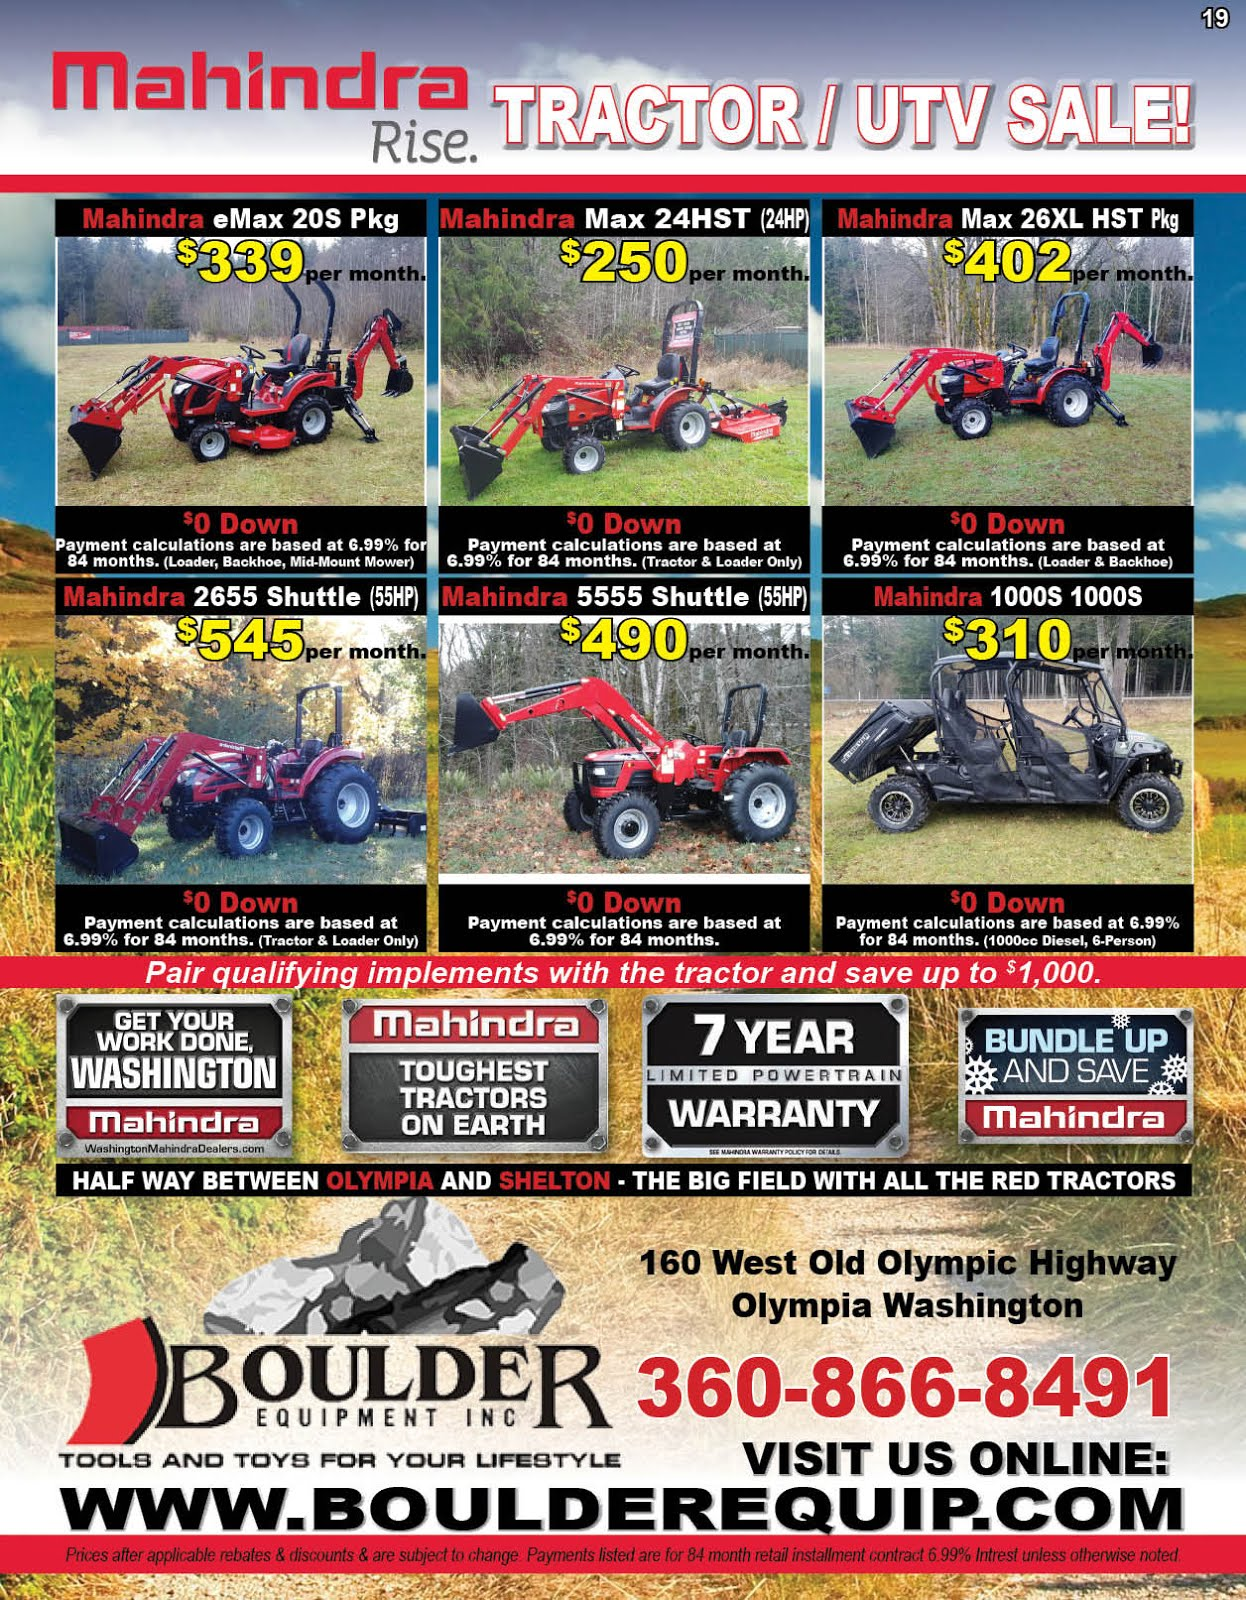 Boulder Equipment New Mahindra Tractor/UTV Sale!!